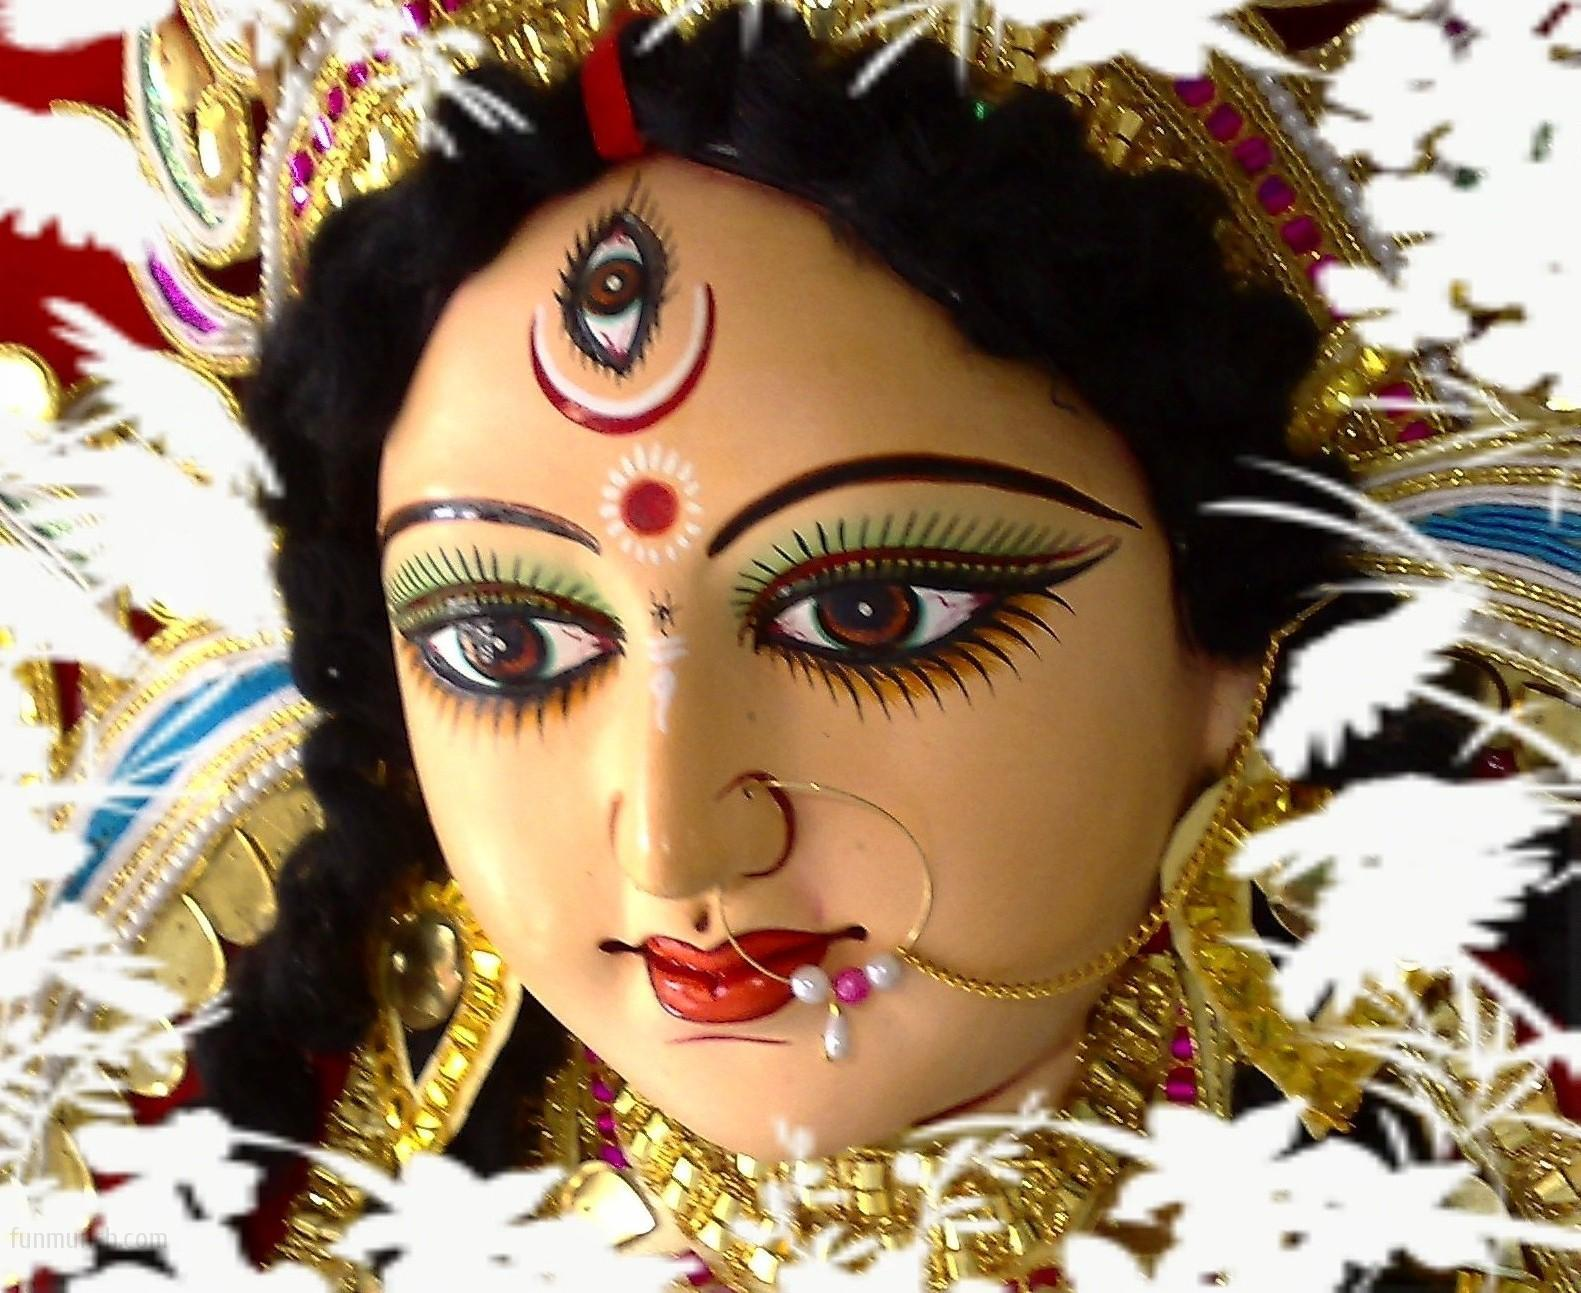 BHARAT DARSHAN - DEVI NAVRATRI - GOD AS MALE AND FEMALE. DEVI OR SHAKTI IS OFTEN CALLED 'DURGA' FOR SHE IS EMBODIMENT OF GREAT STRENGTH. SHE IS ALSO CALLED BHADRAKALI, JAGADAMBA, ANNAPURNA, SARVAMANGALA, BHAIRAVI, CHANDIKA, LALITA, BHAVANI, AND MOOKAMBIKA.